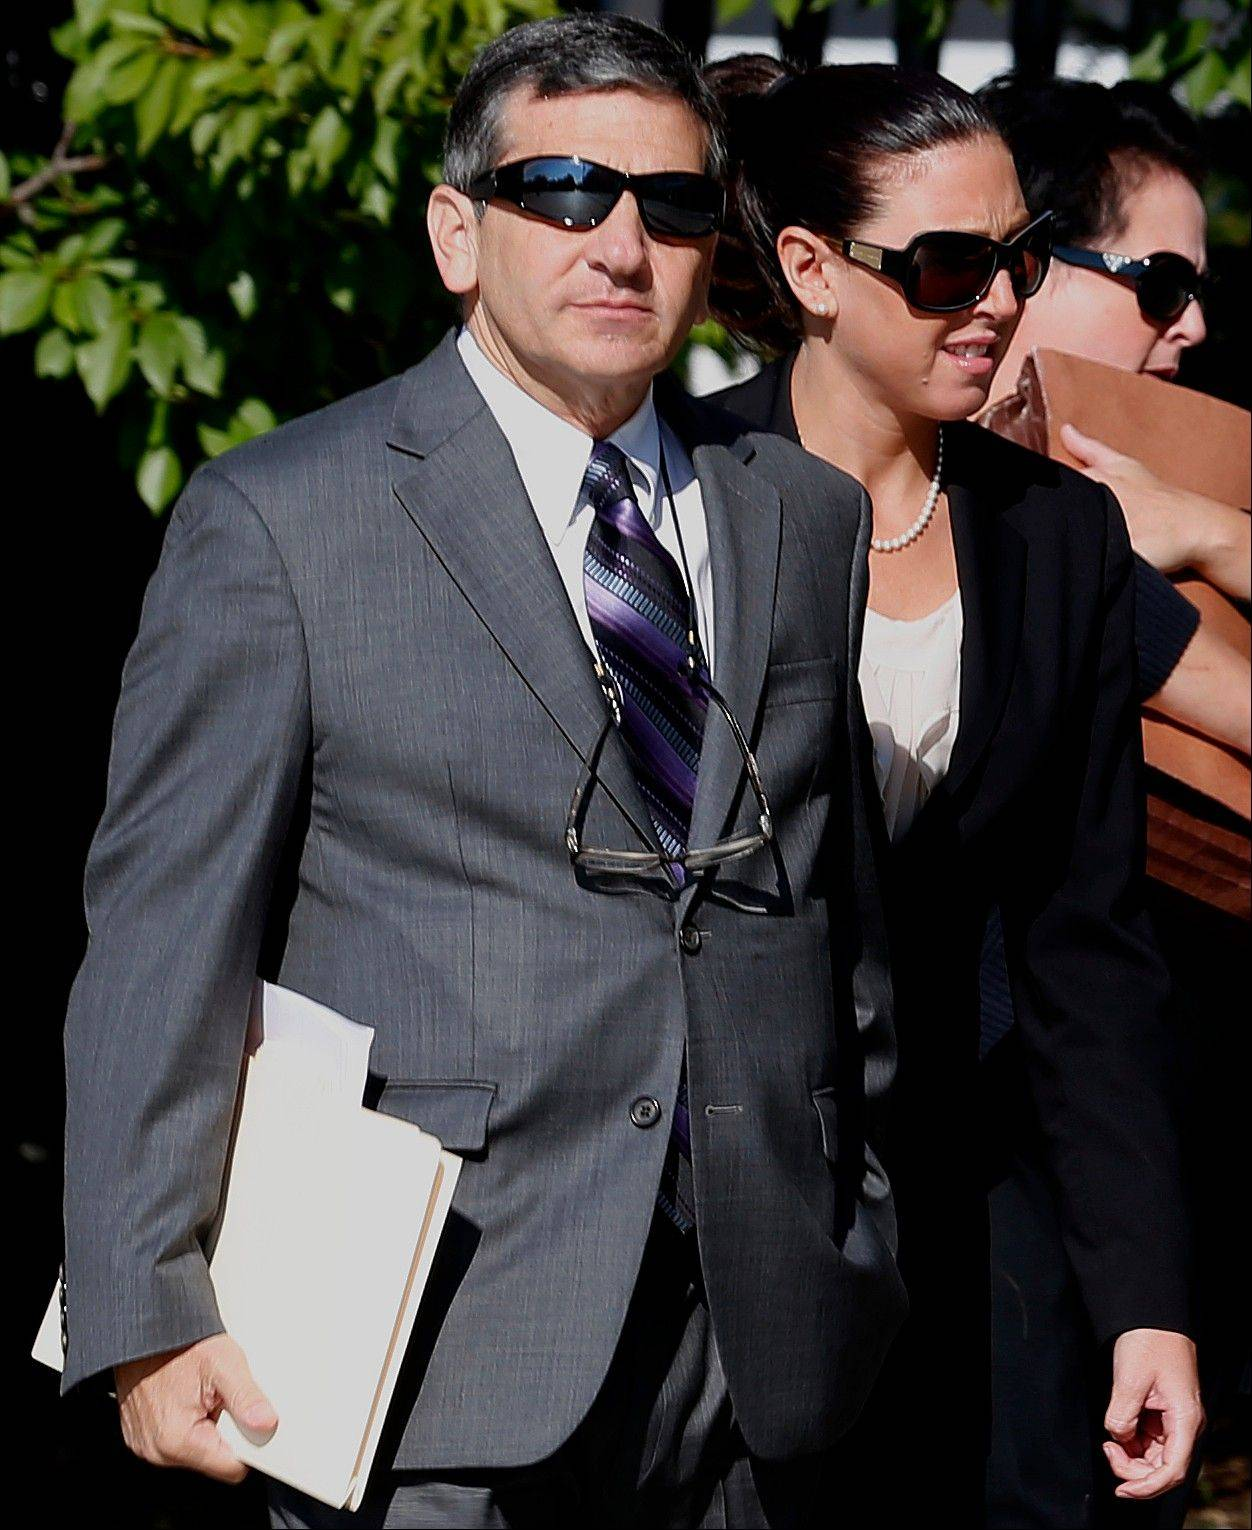 Erica DePalo, right, walks with her attorney Anthony Alfano into Essex County Superior Court before an appearance, Wednesday, Sept. 12, 2012, in Newark, N.J. DePalo, the 2011 Essex County teacher of the year, pled not guilty to charges she had a sexual relationship with a 15-year-old honors student. Prosecutors say the 33-year-old Montclair resident had a relationship with a boy in her honors English class. They say the affair started in June and ended recently. DePalo has been indefinitely suspended from her job teaching English at West Orange High School.